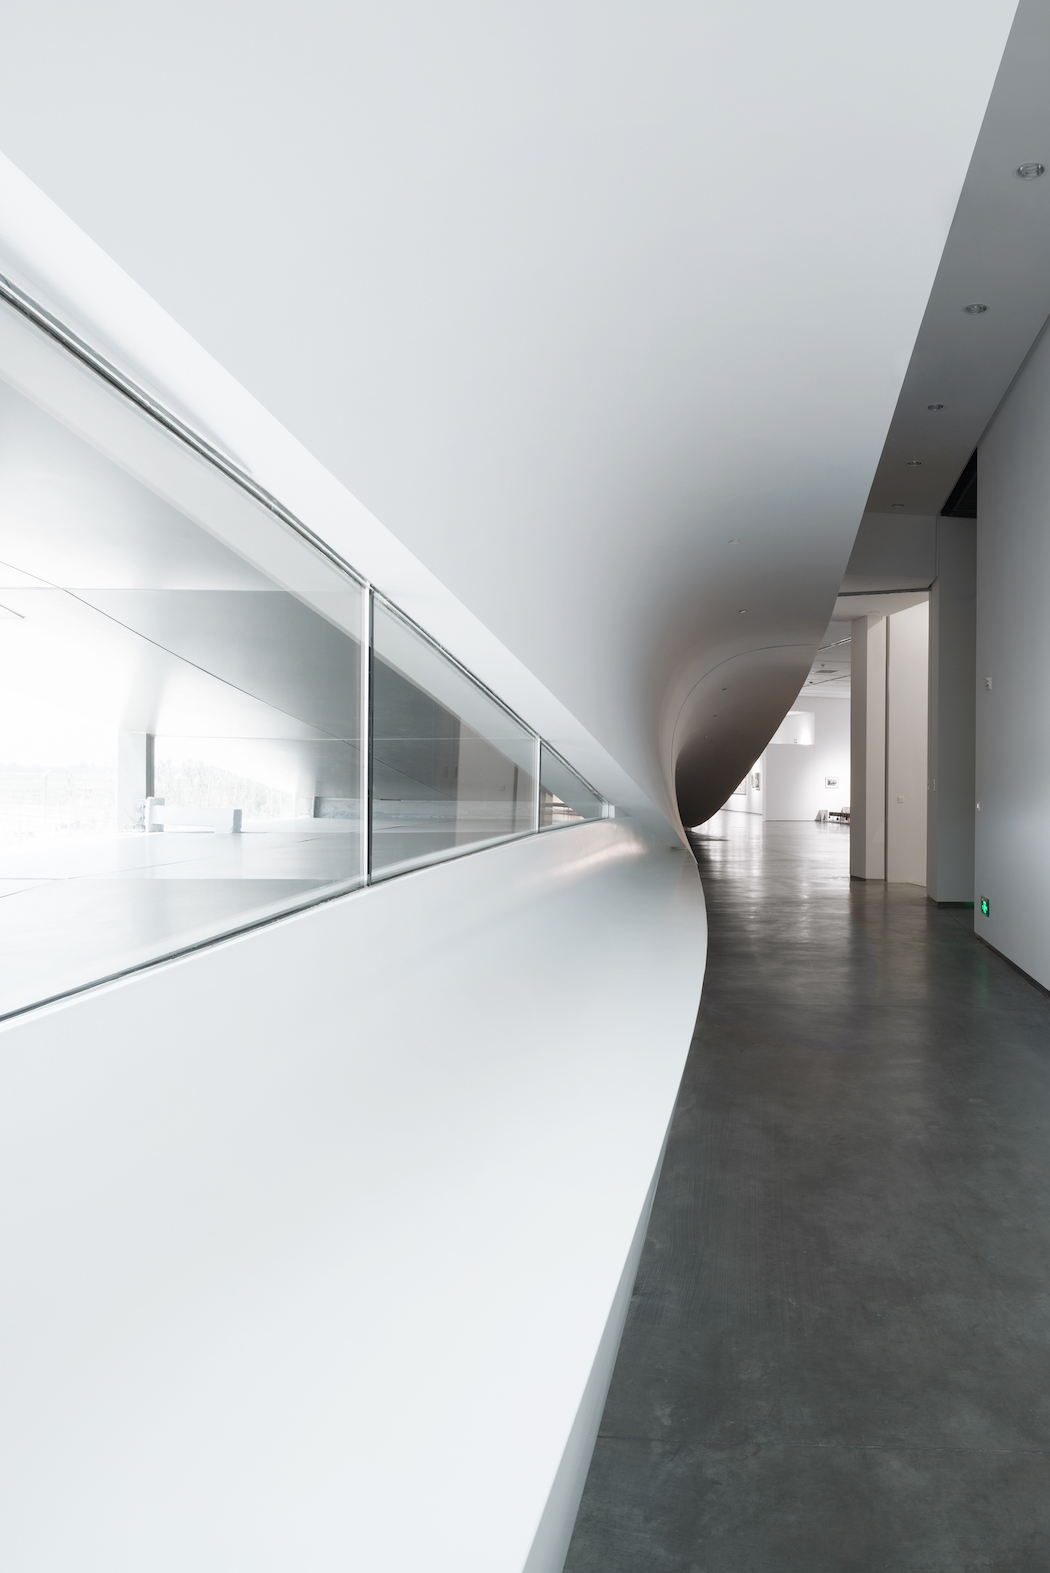 Yinchuan Museum of Contemporary Art (MOCA) : waa (we architech anonymous) 3